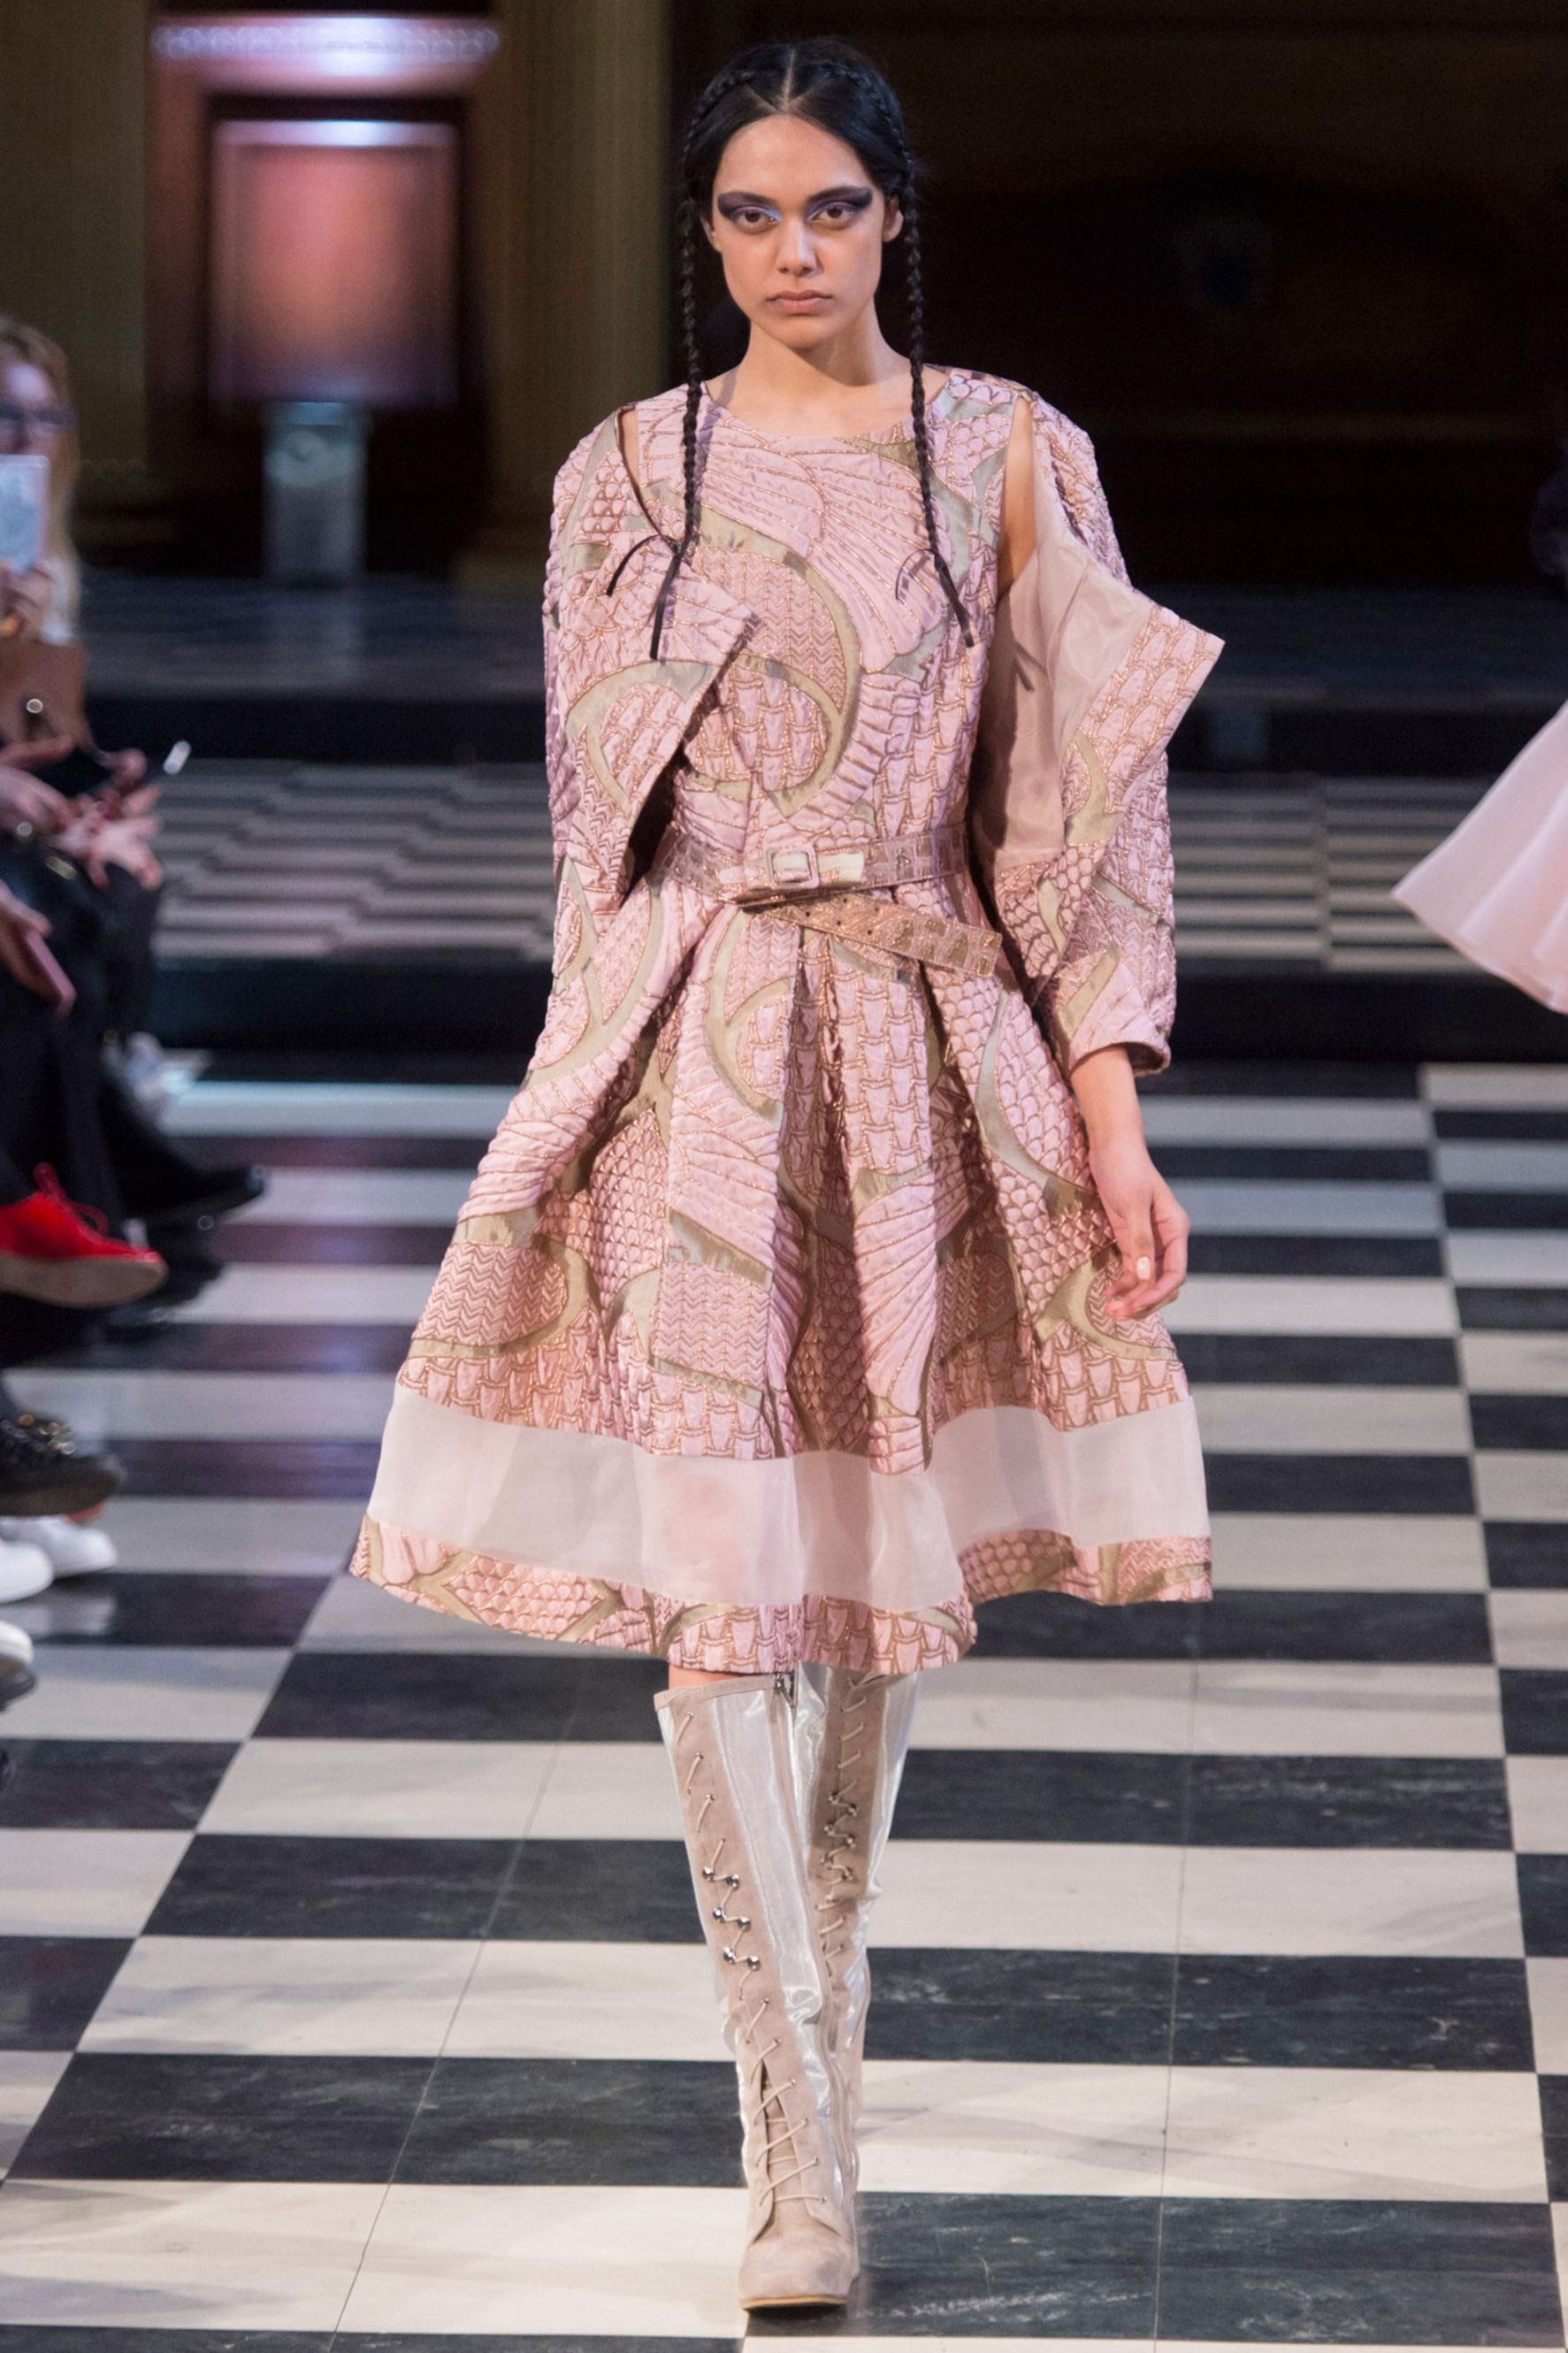 Pin on Couture-Runway CIRCA 2019-2020